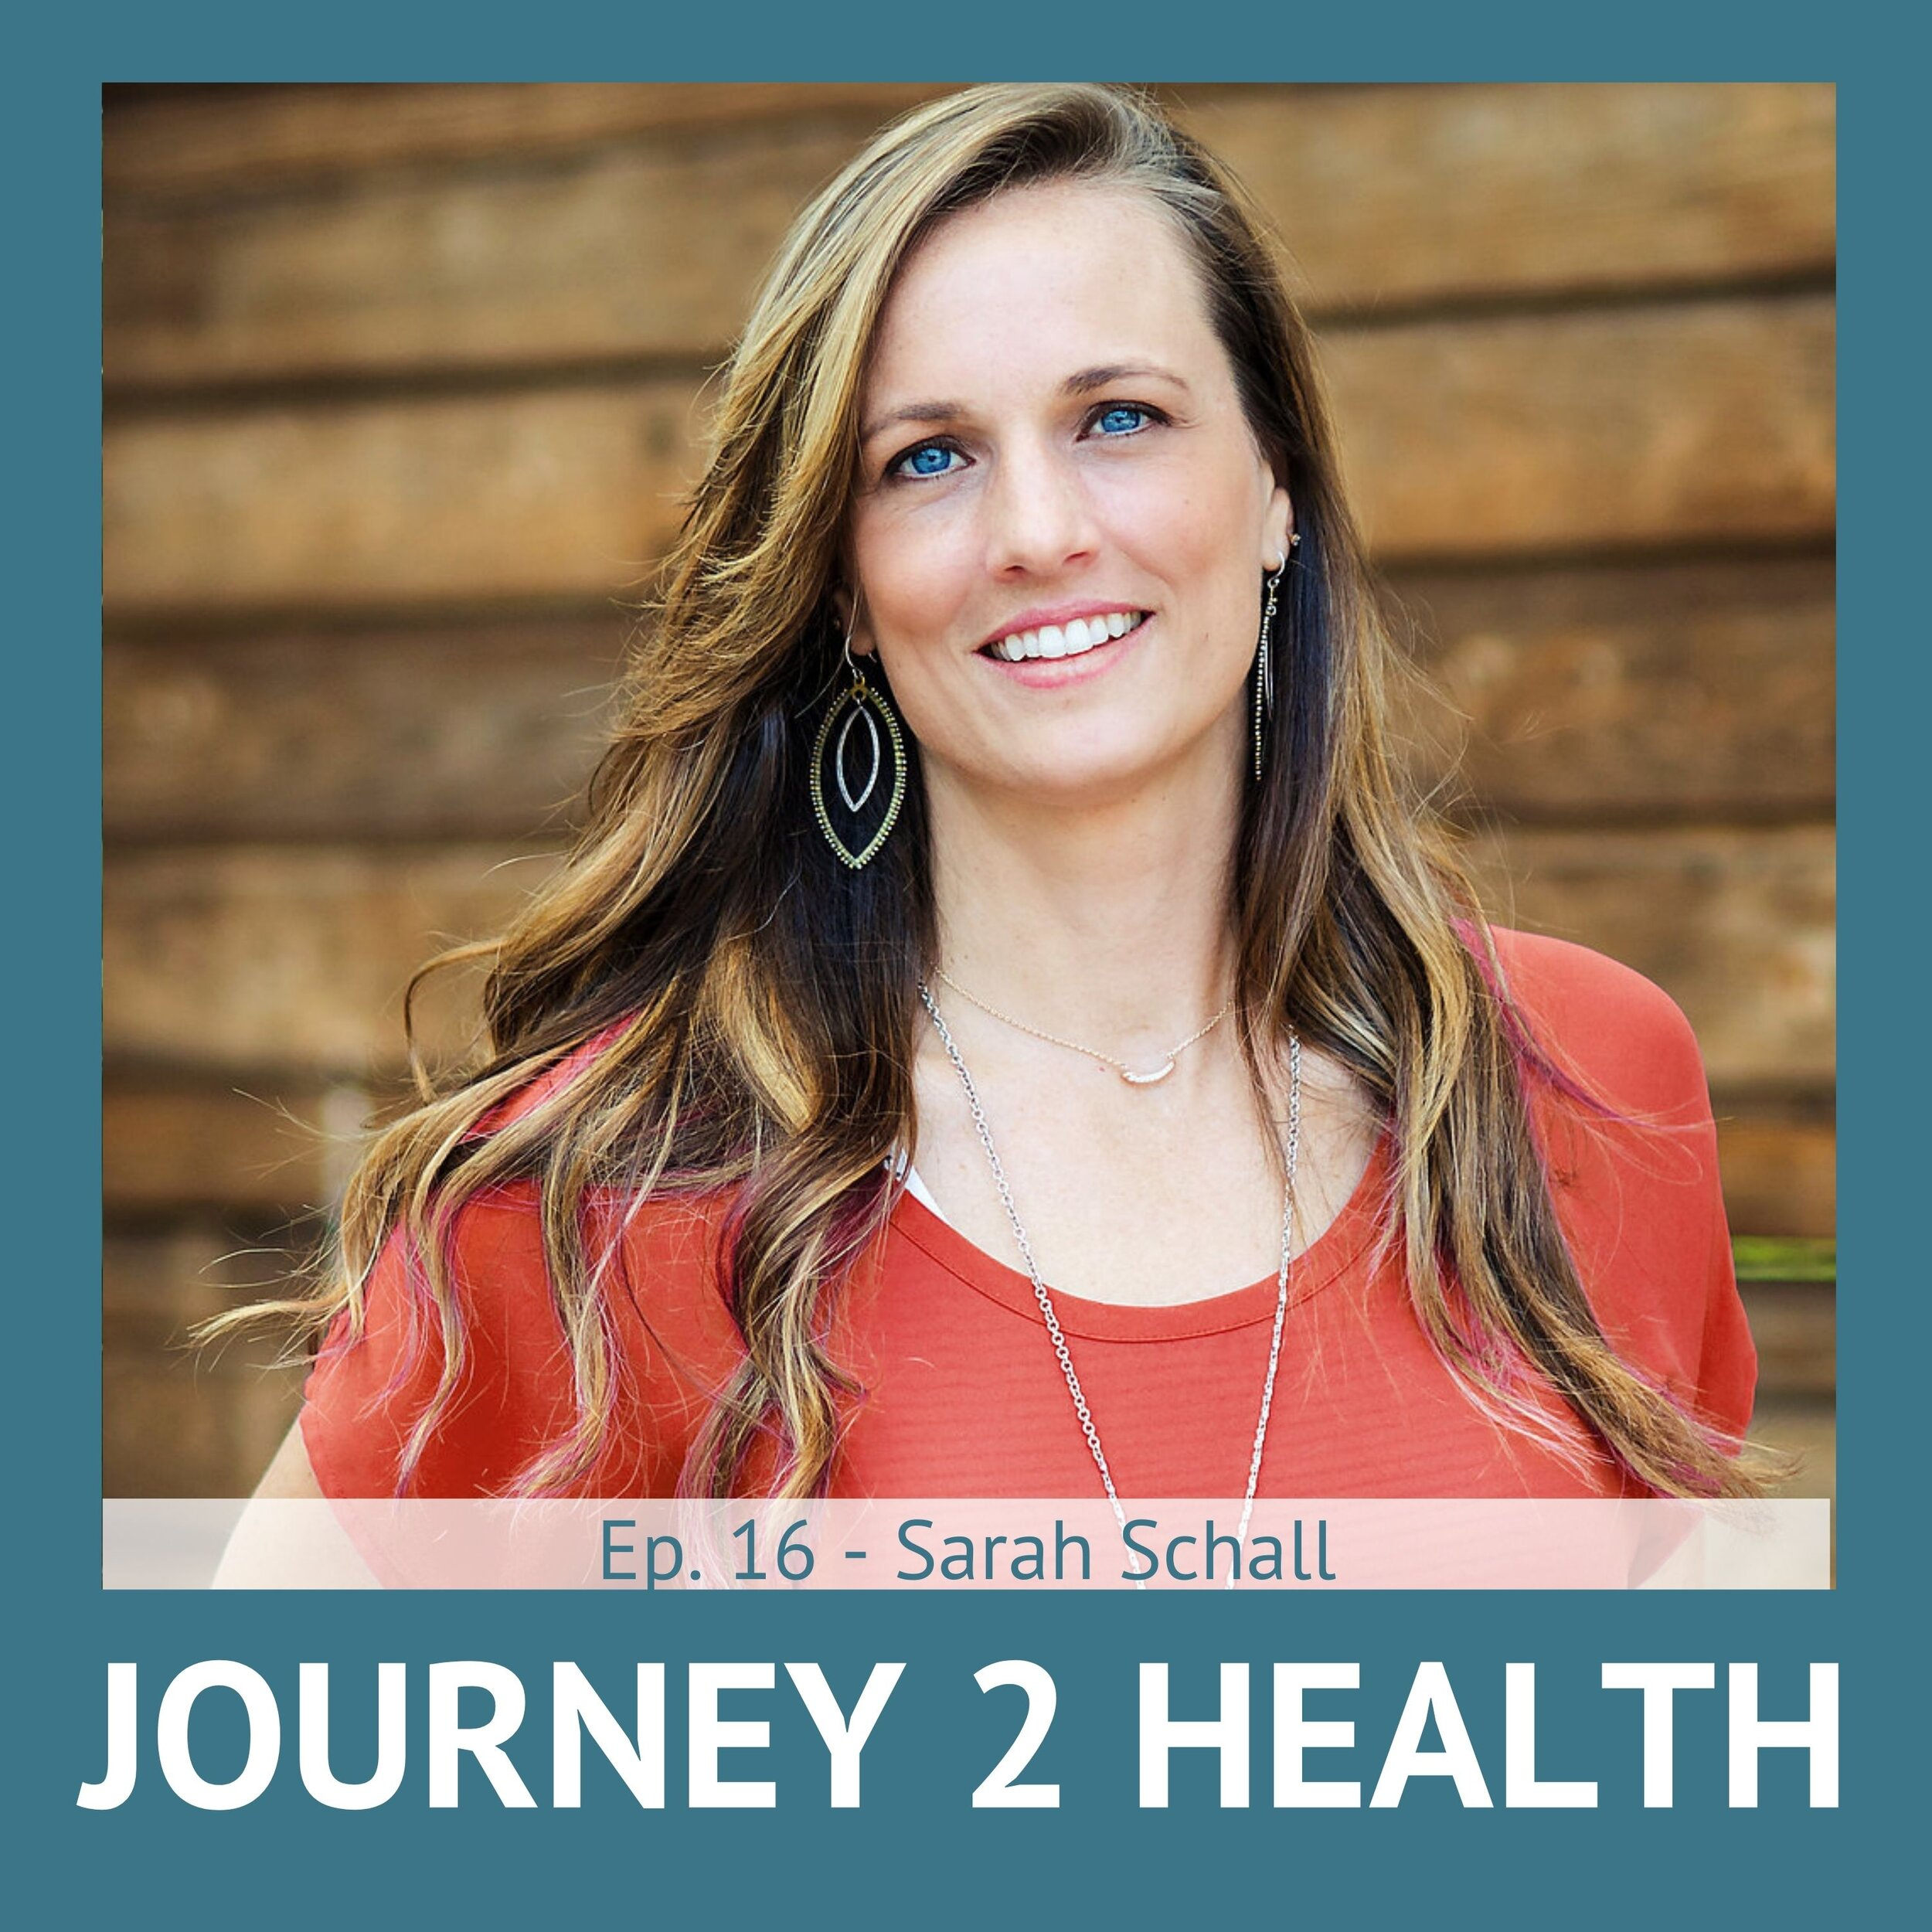 Ep #21 Eat Well on your Journey 2 Health